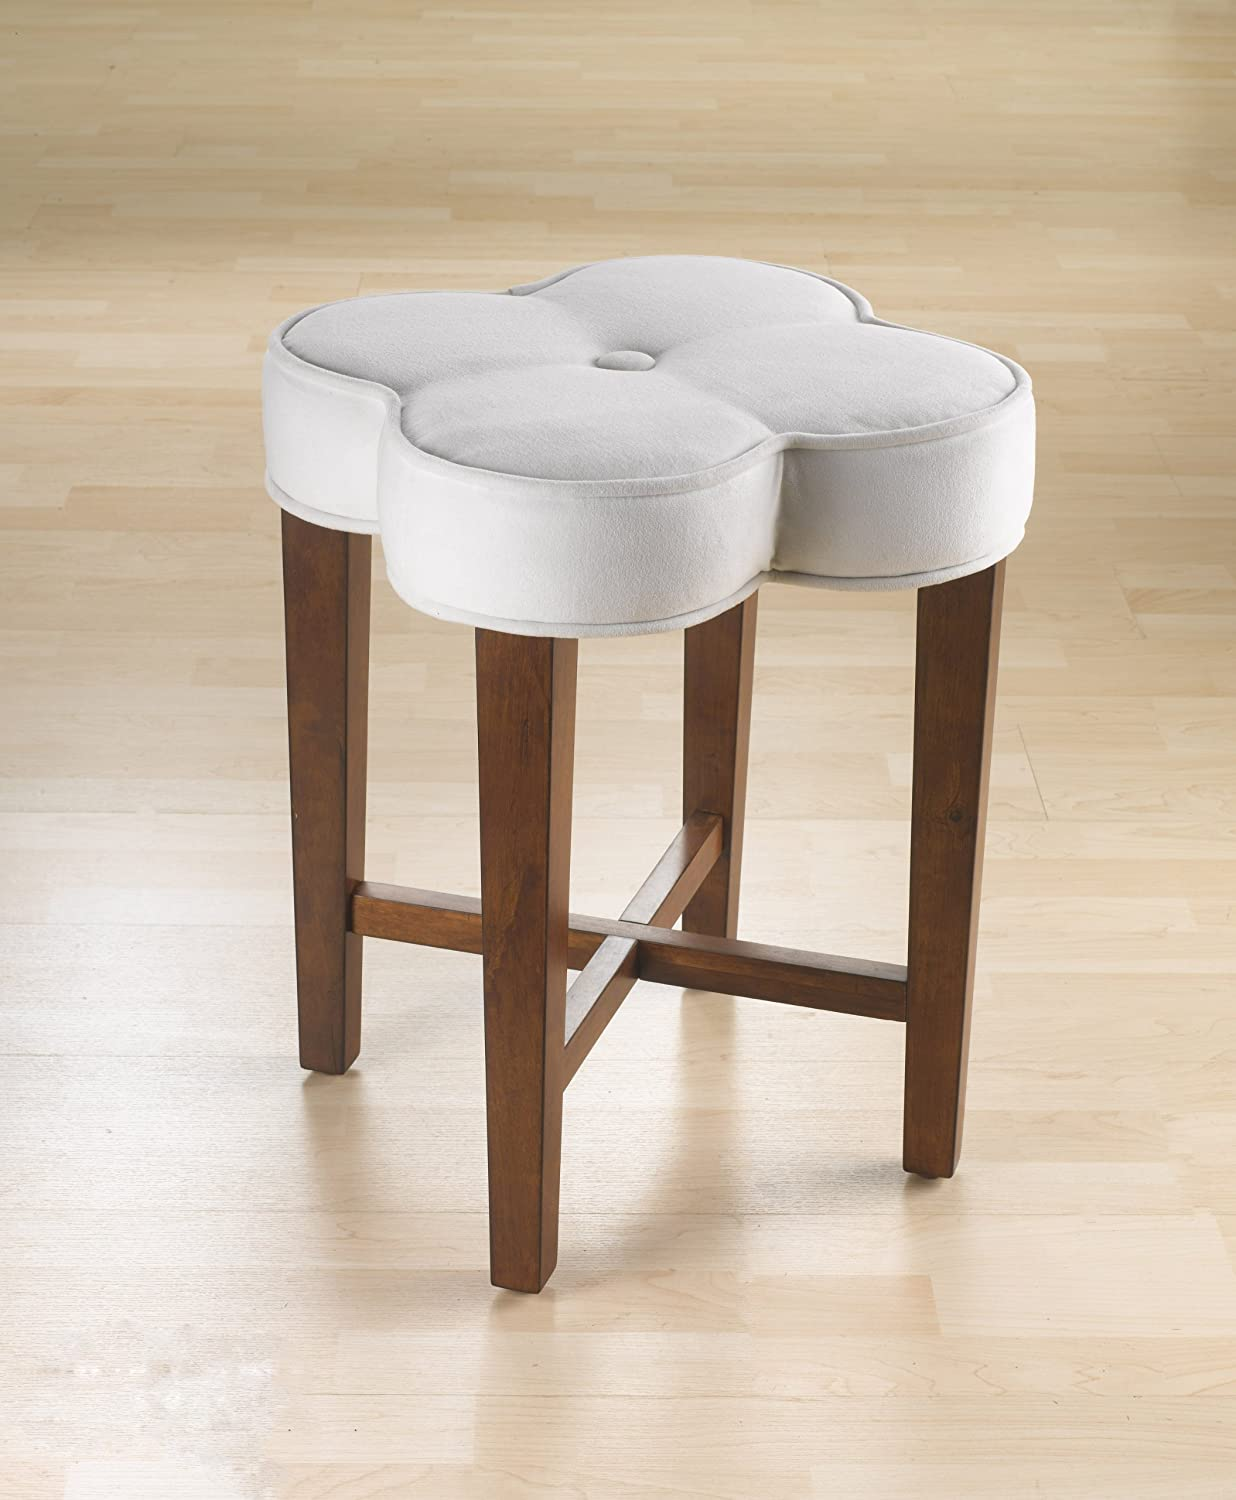 & Amazon.com: Hillsdale Clover Vanity Stool: Kitchen u0026 Dining islam-shia.org